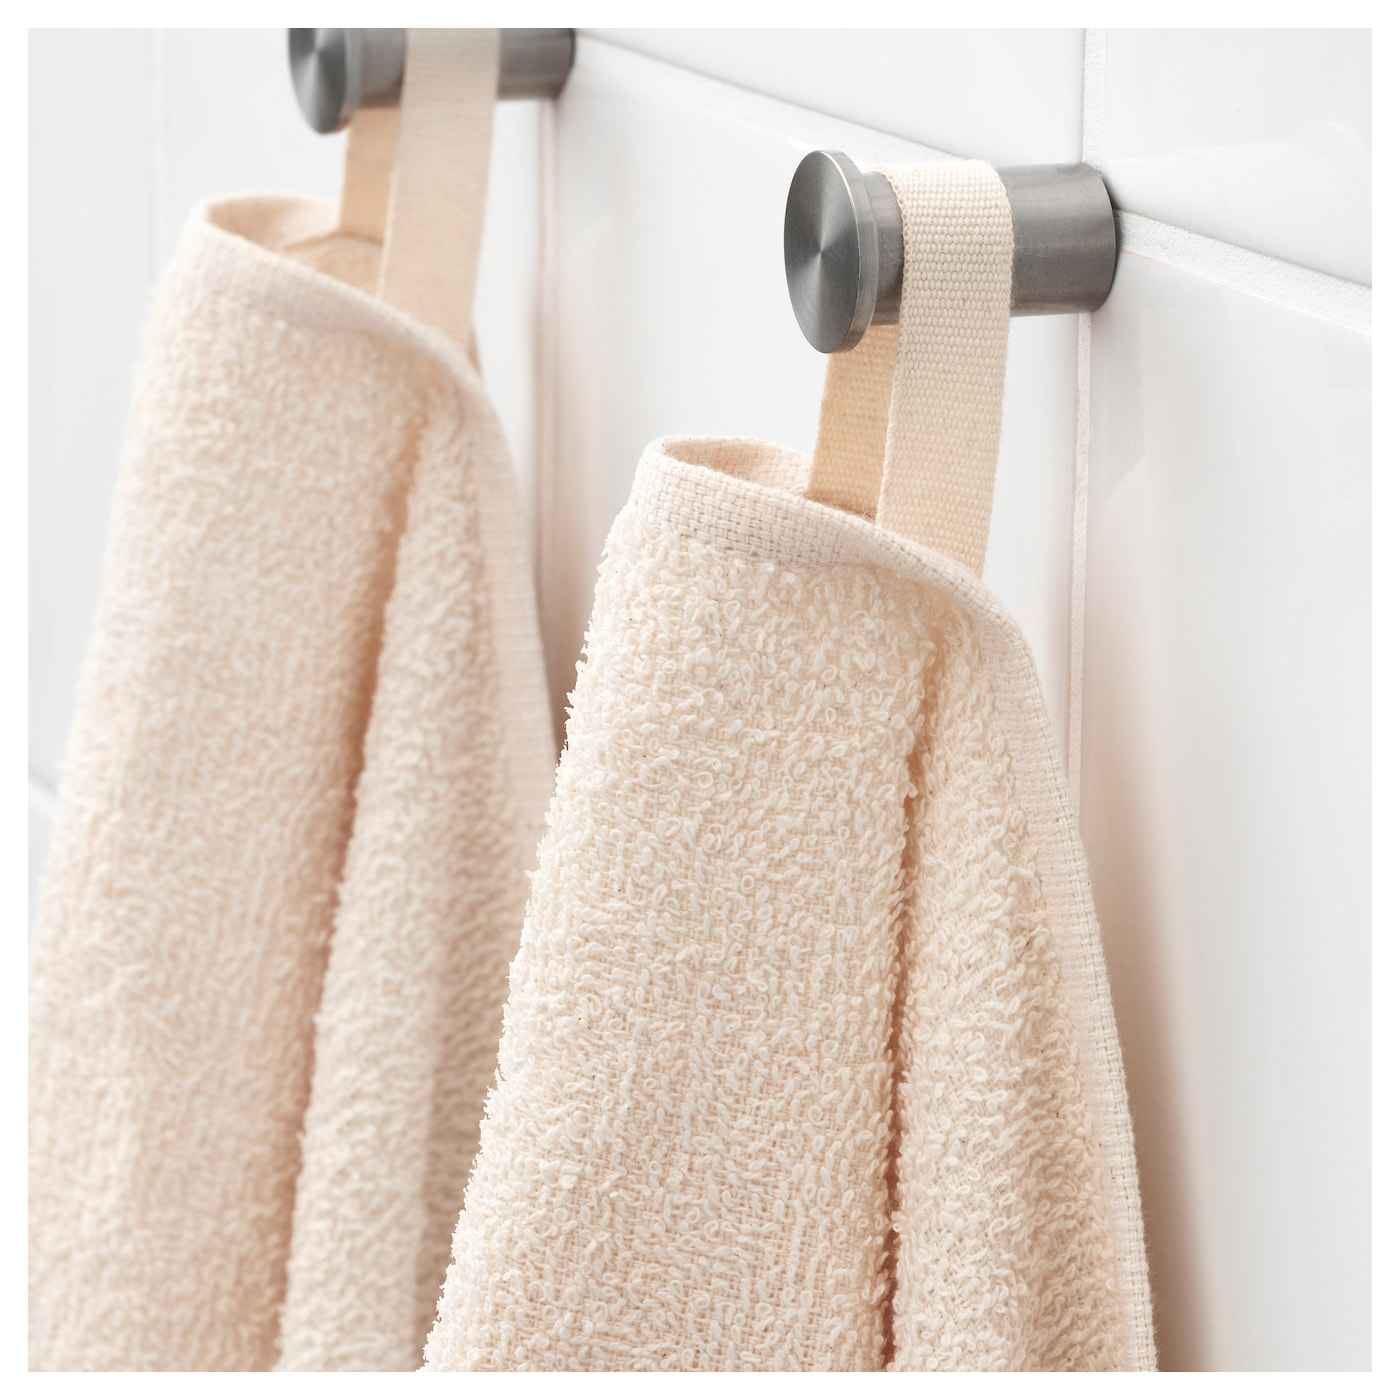 IKEA LEJAREN bath towel A perfect choice if you want a towel that dries quickly.